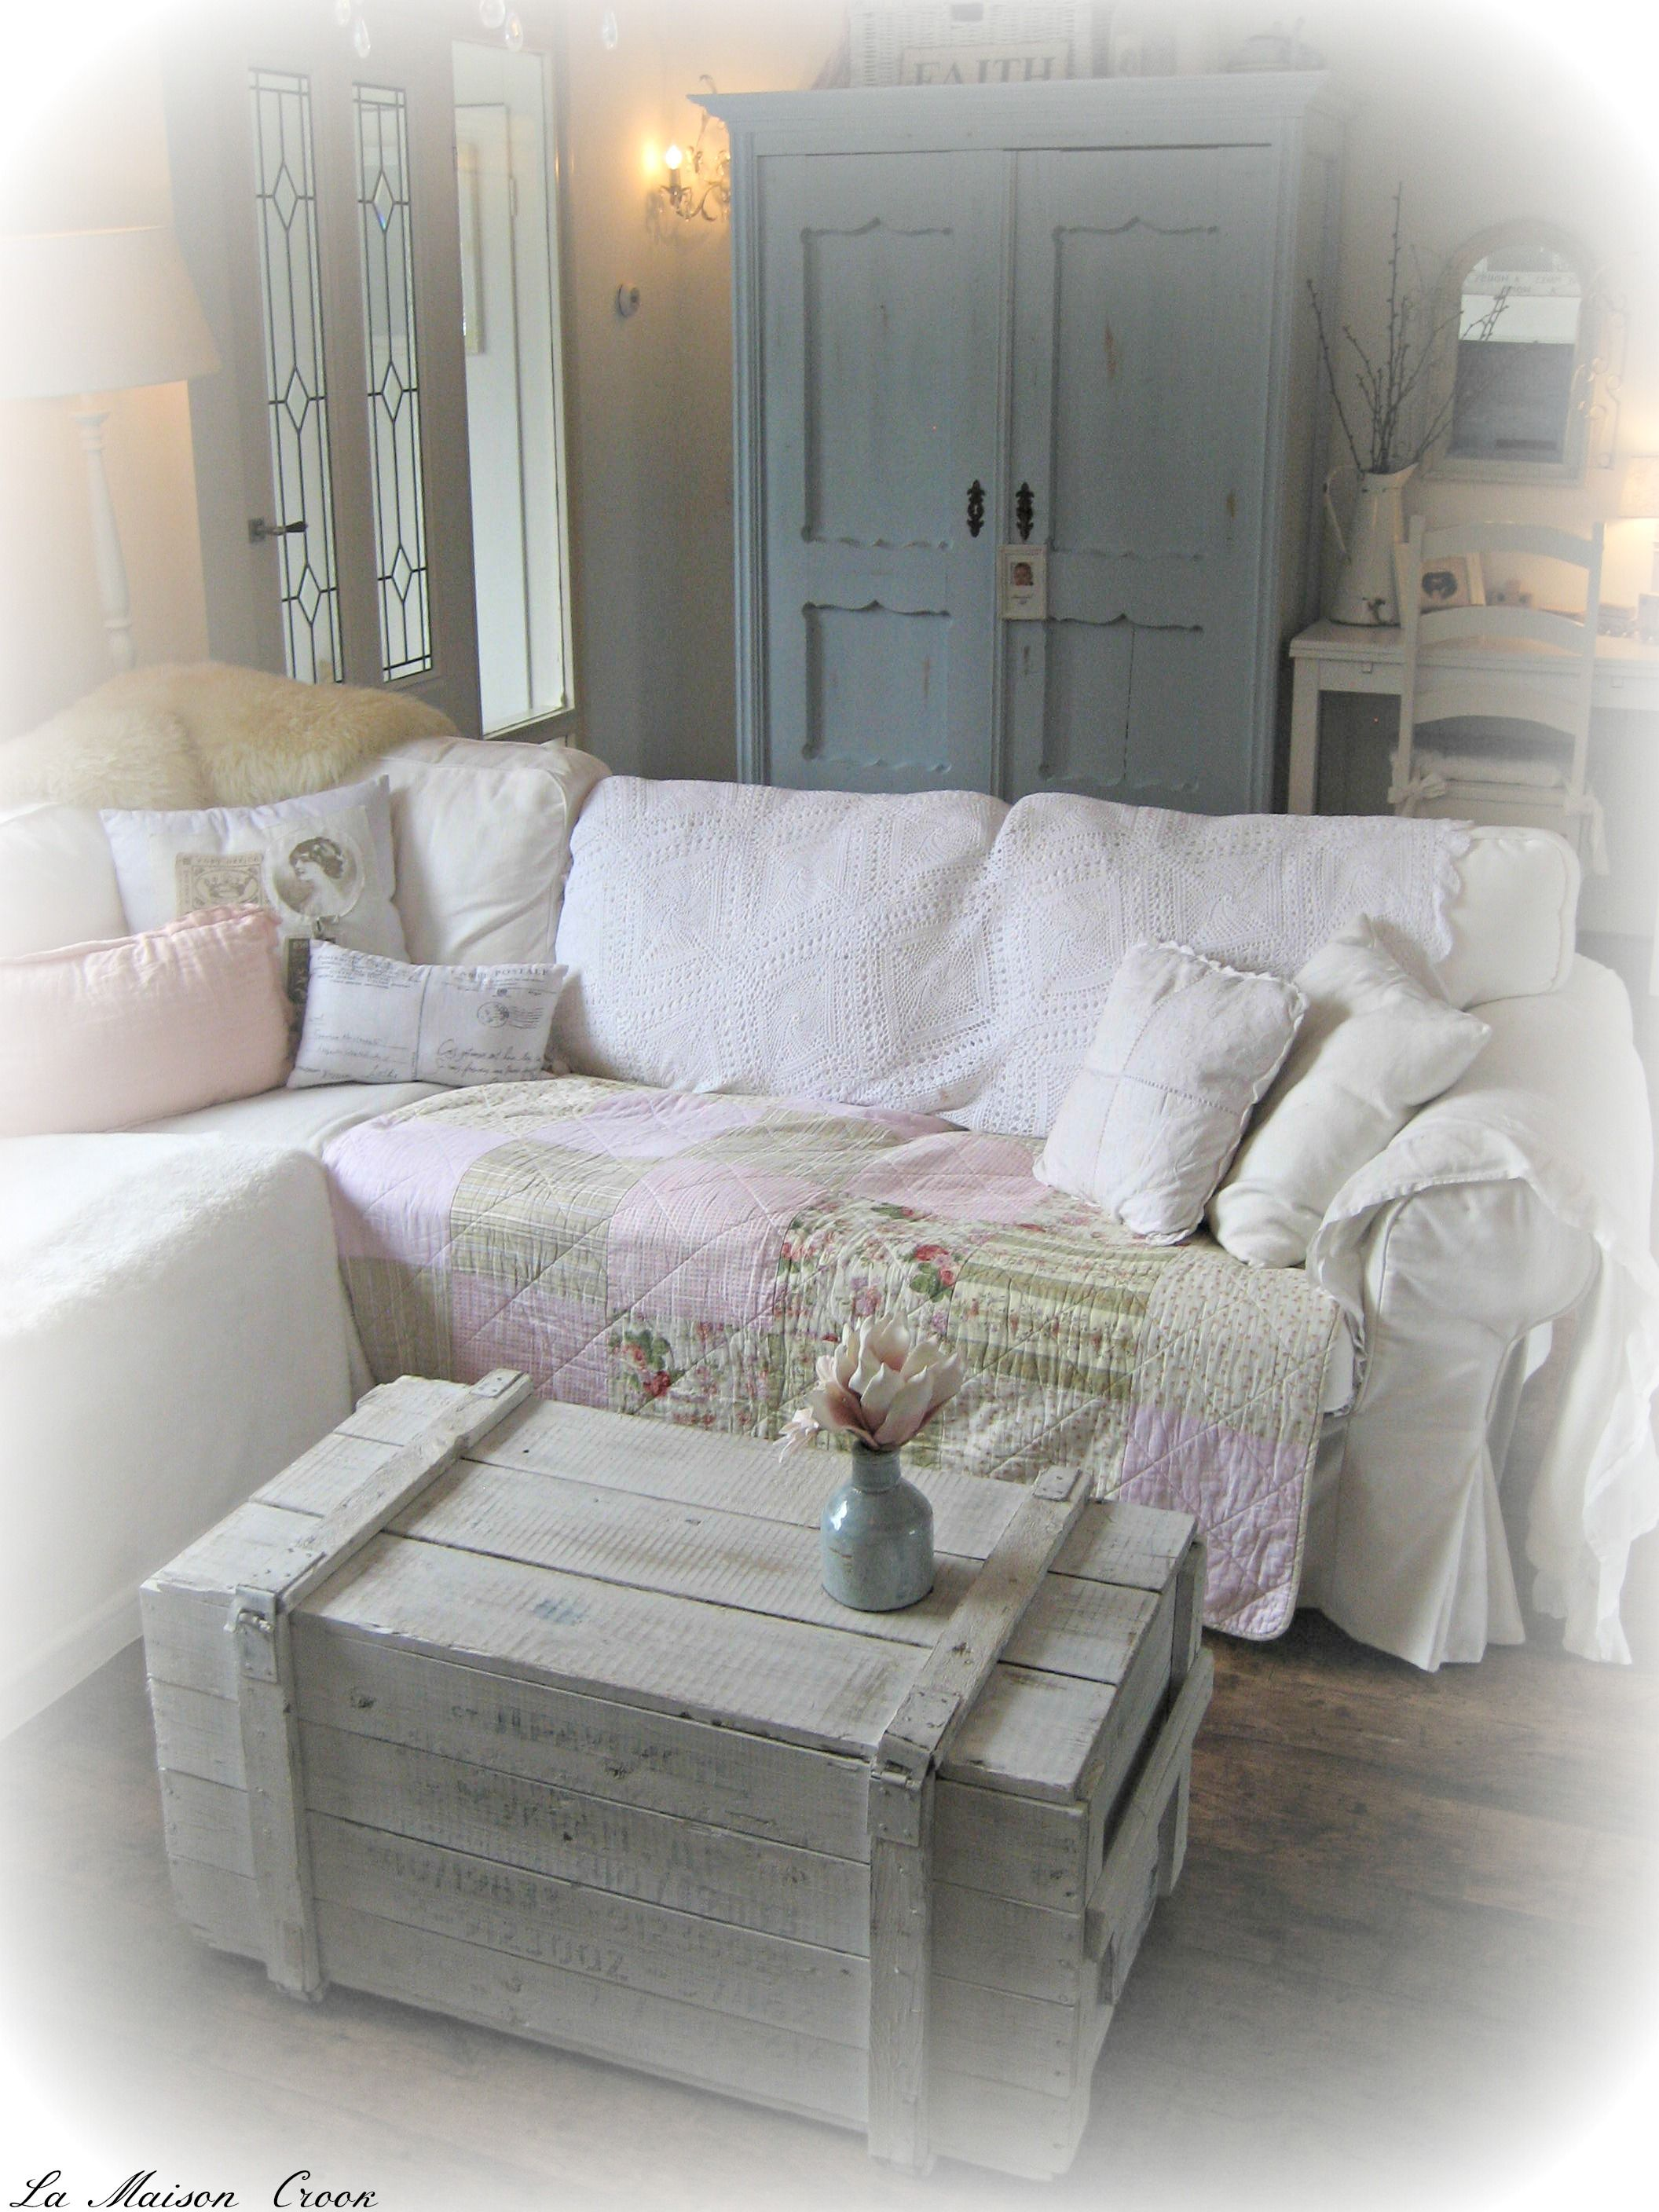 Brocante Woonkamer Brocante Woonkamer Shabby Chic Living Room Our Home